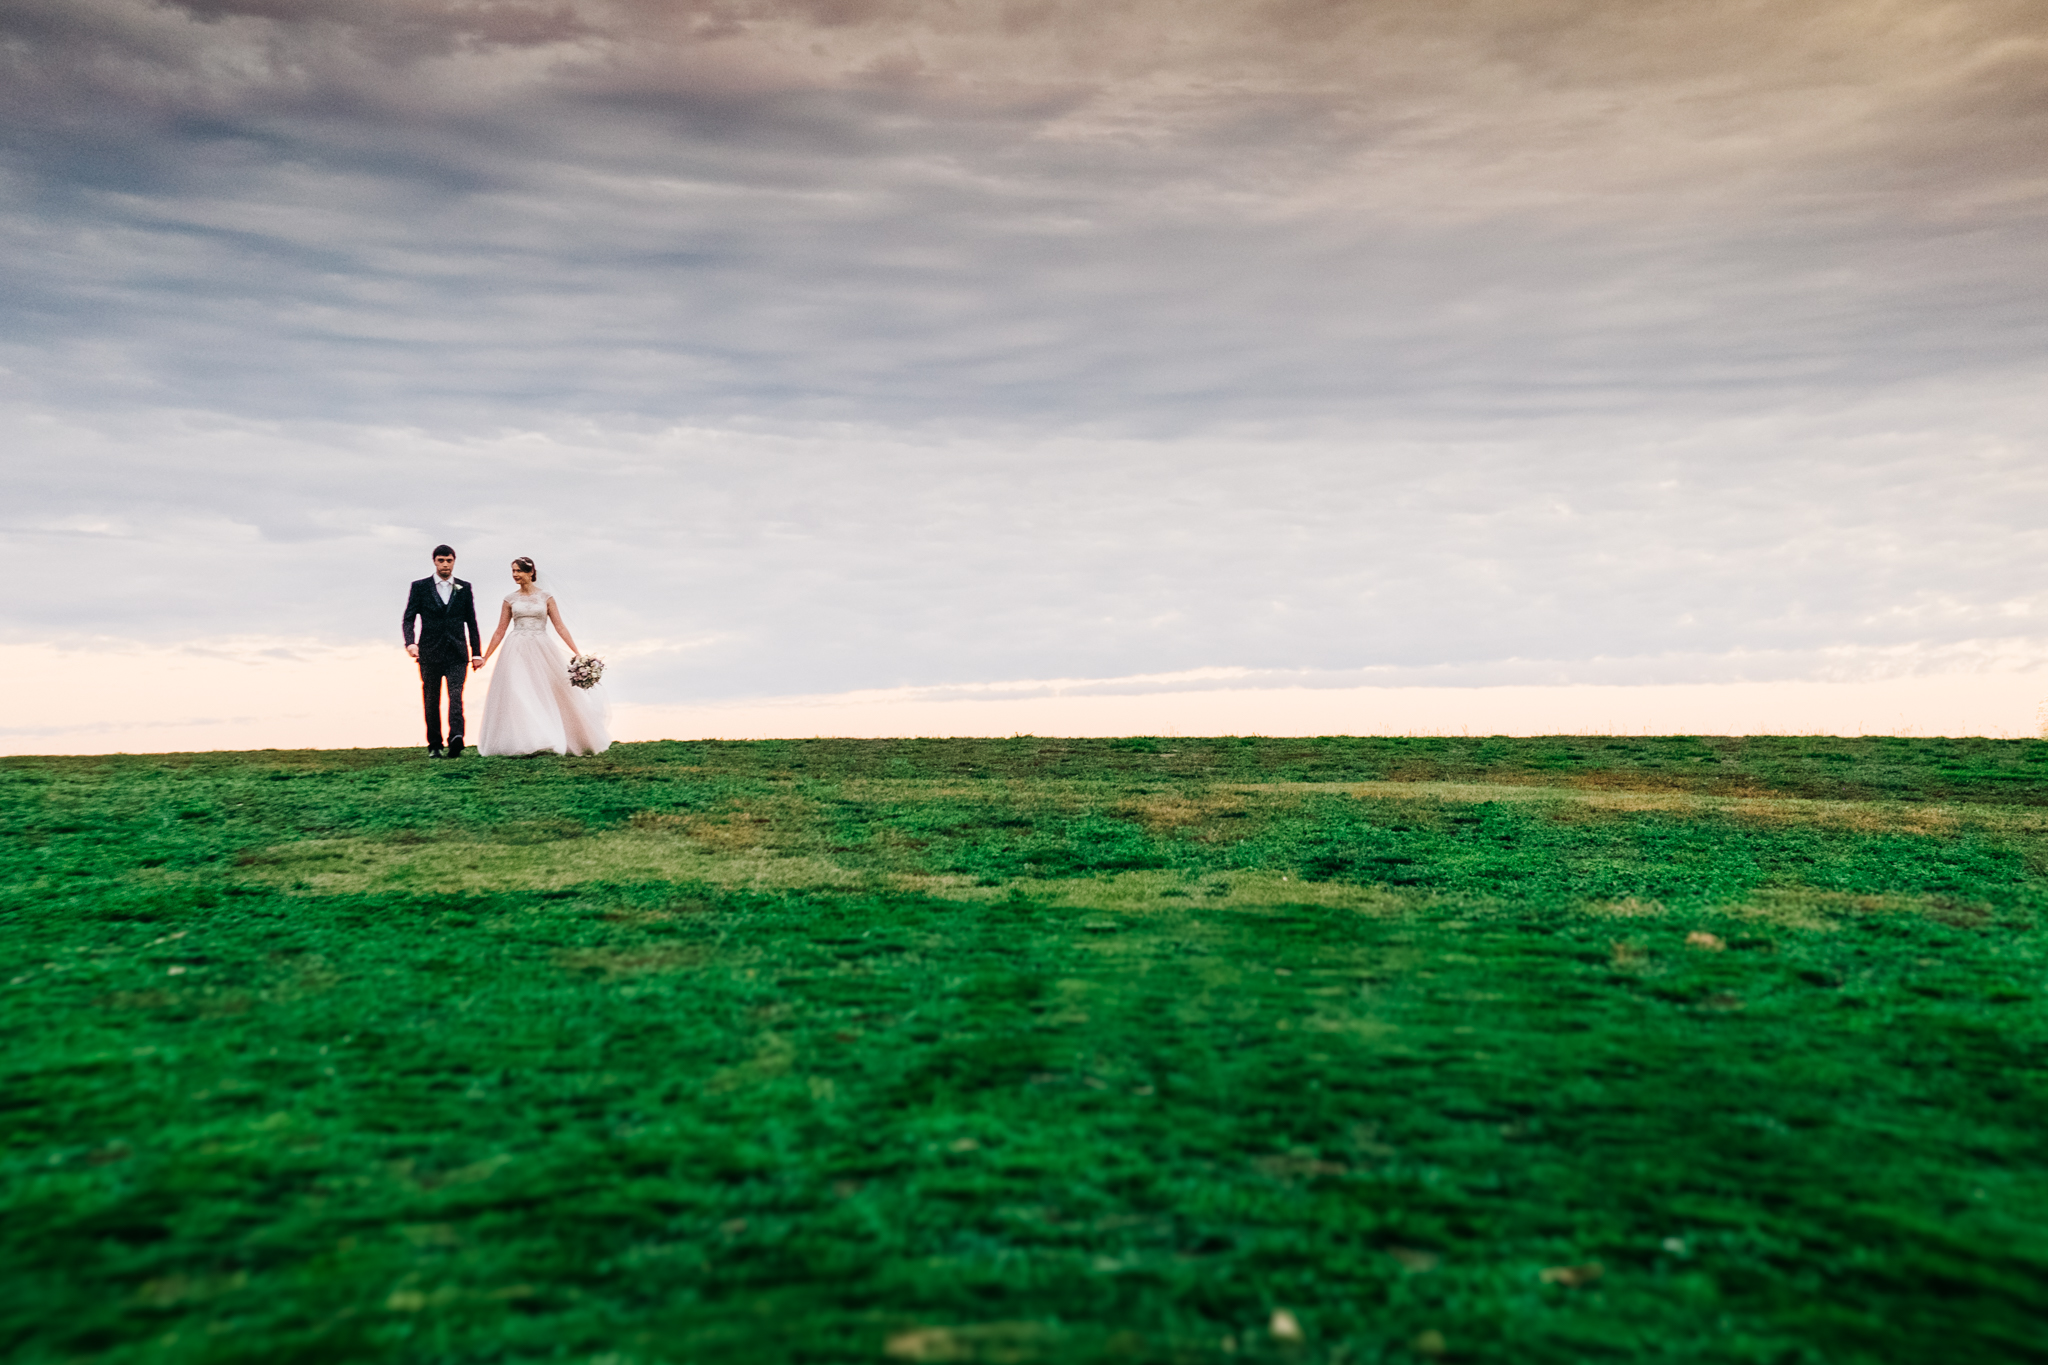 Bendigo_wedding-Amazing-Winery-Wedding-Photography-bride_and_groom-strolling in-open-field-on-a-hill.jpeg